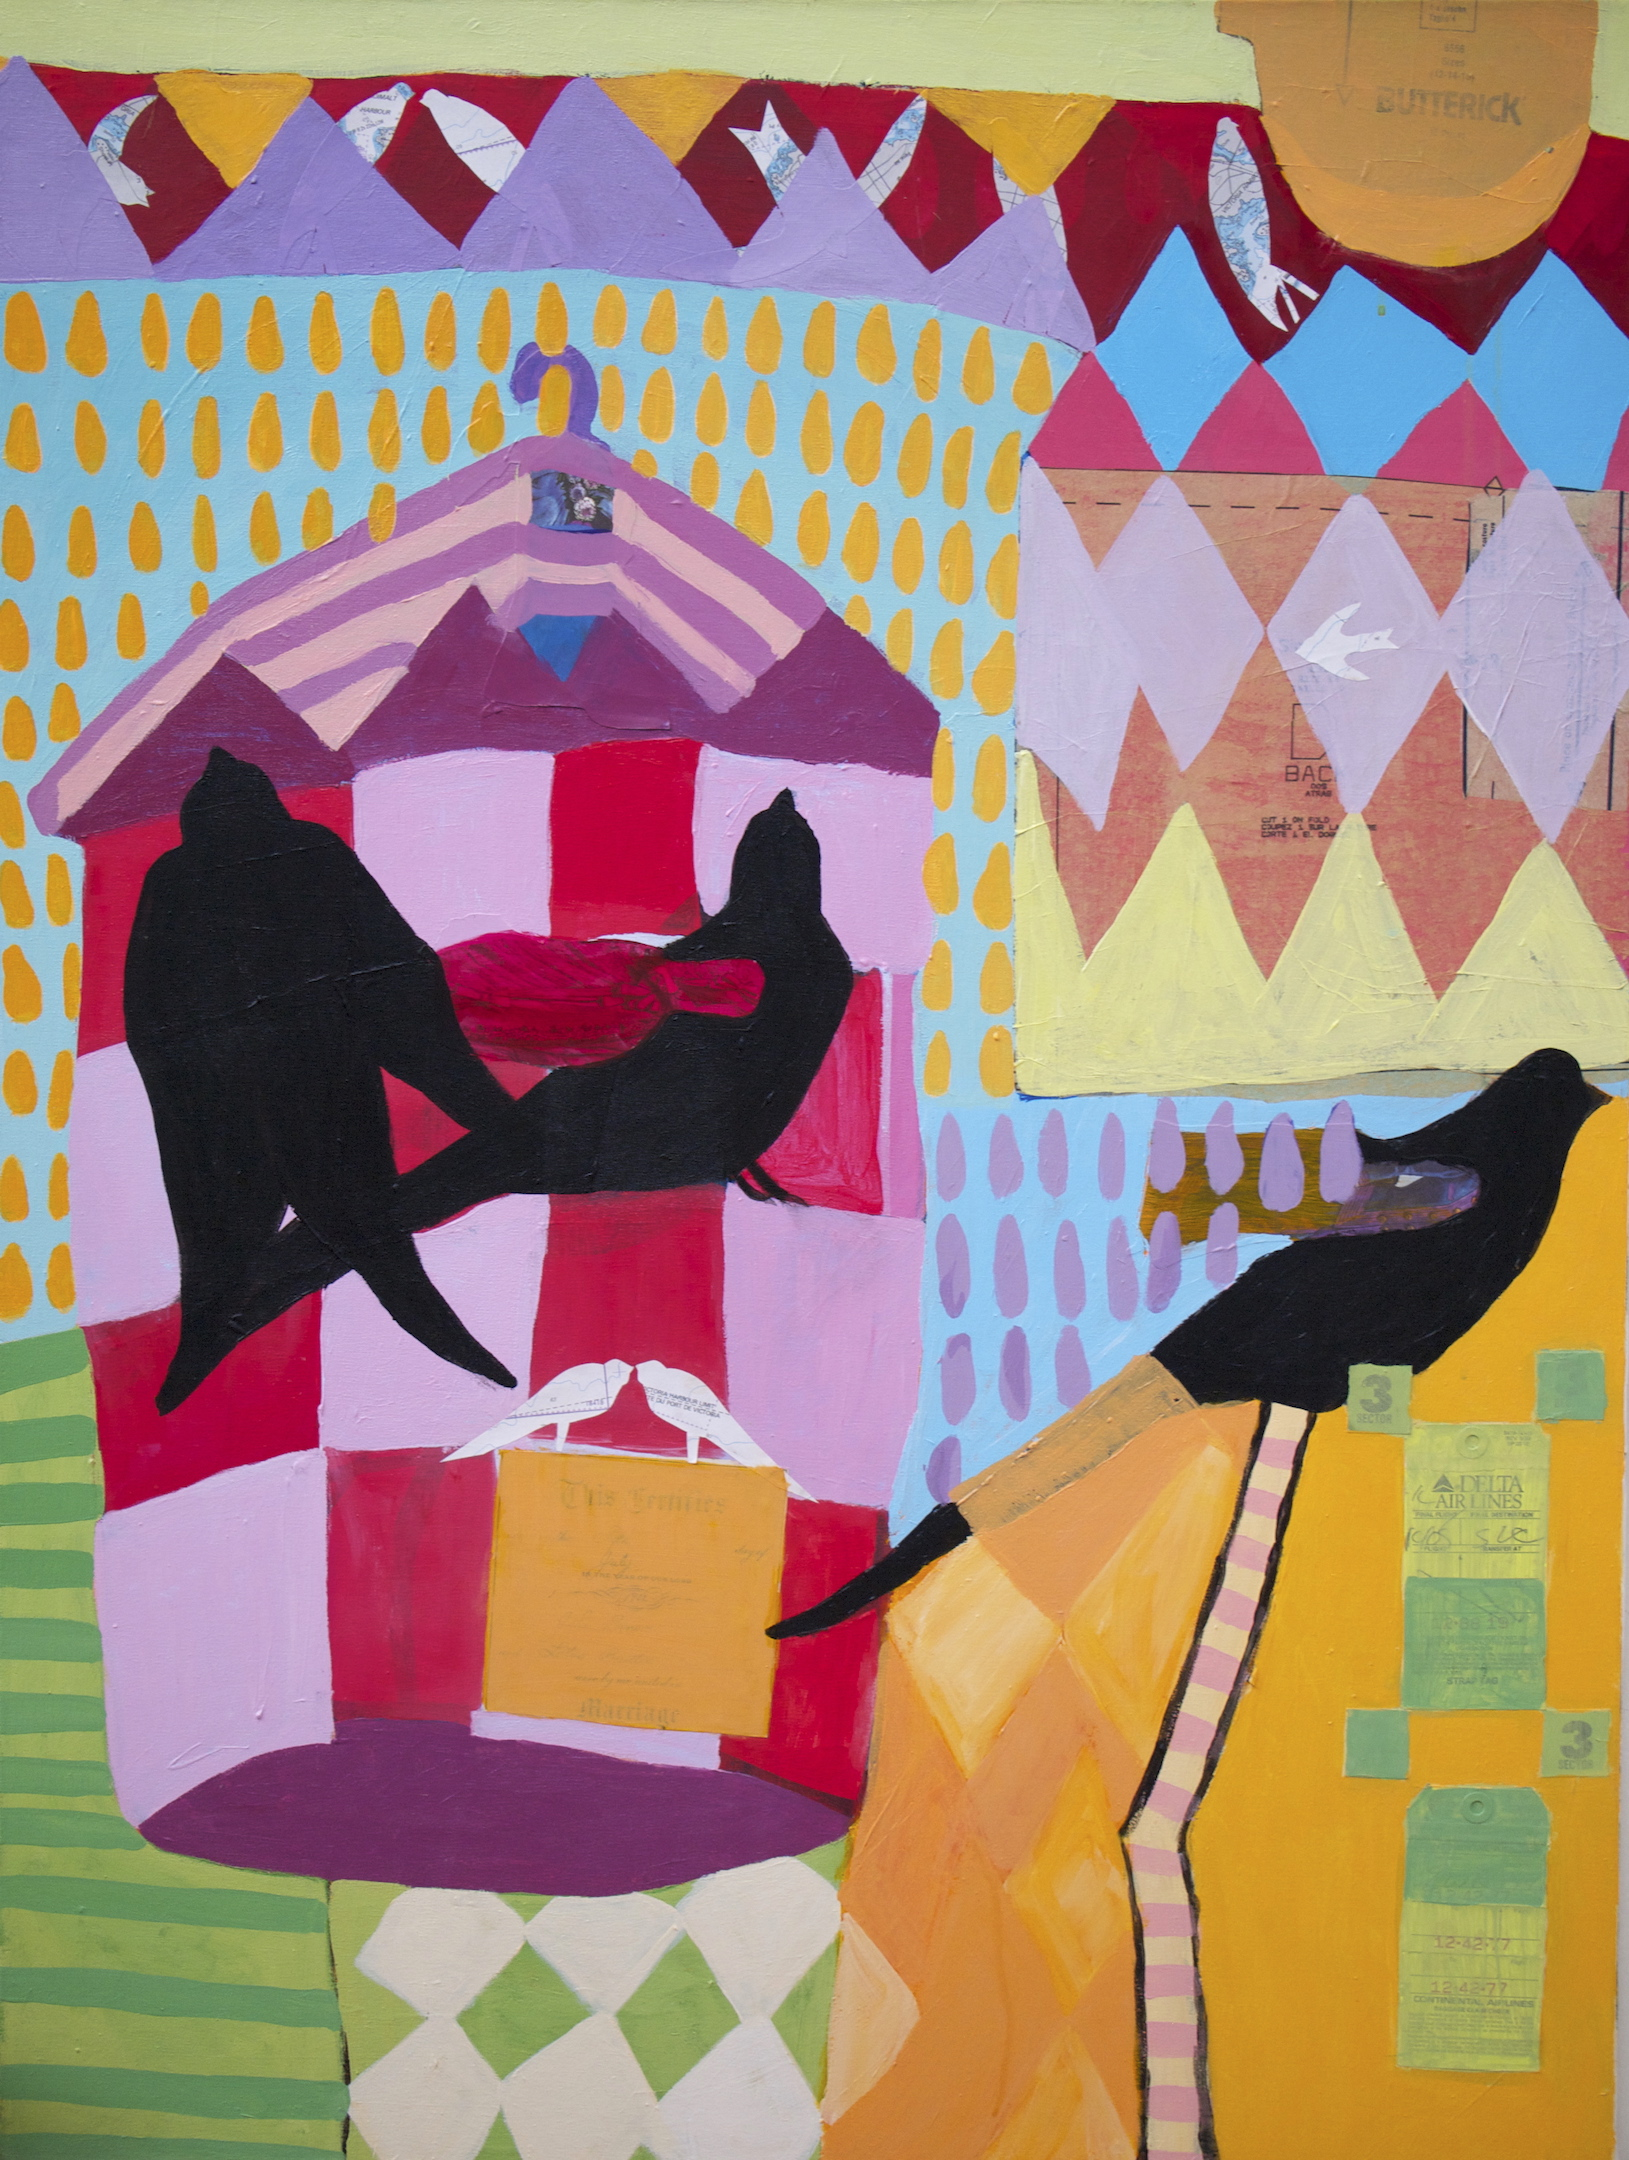 Aviary: The Union , 40 x 30, Acrylic and collage on canvas